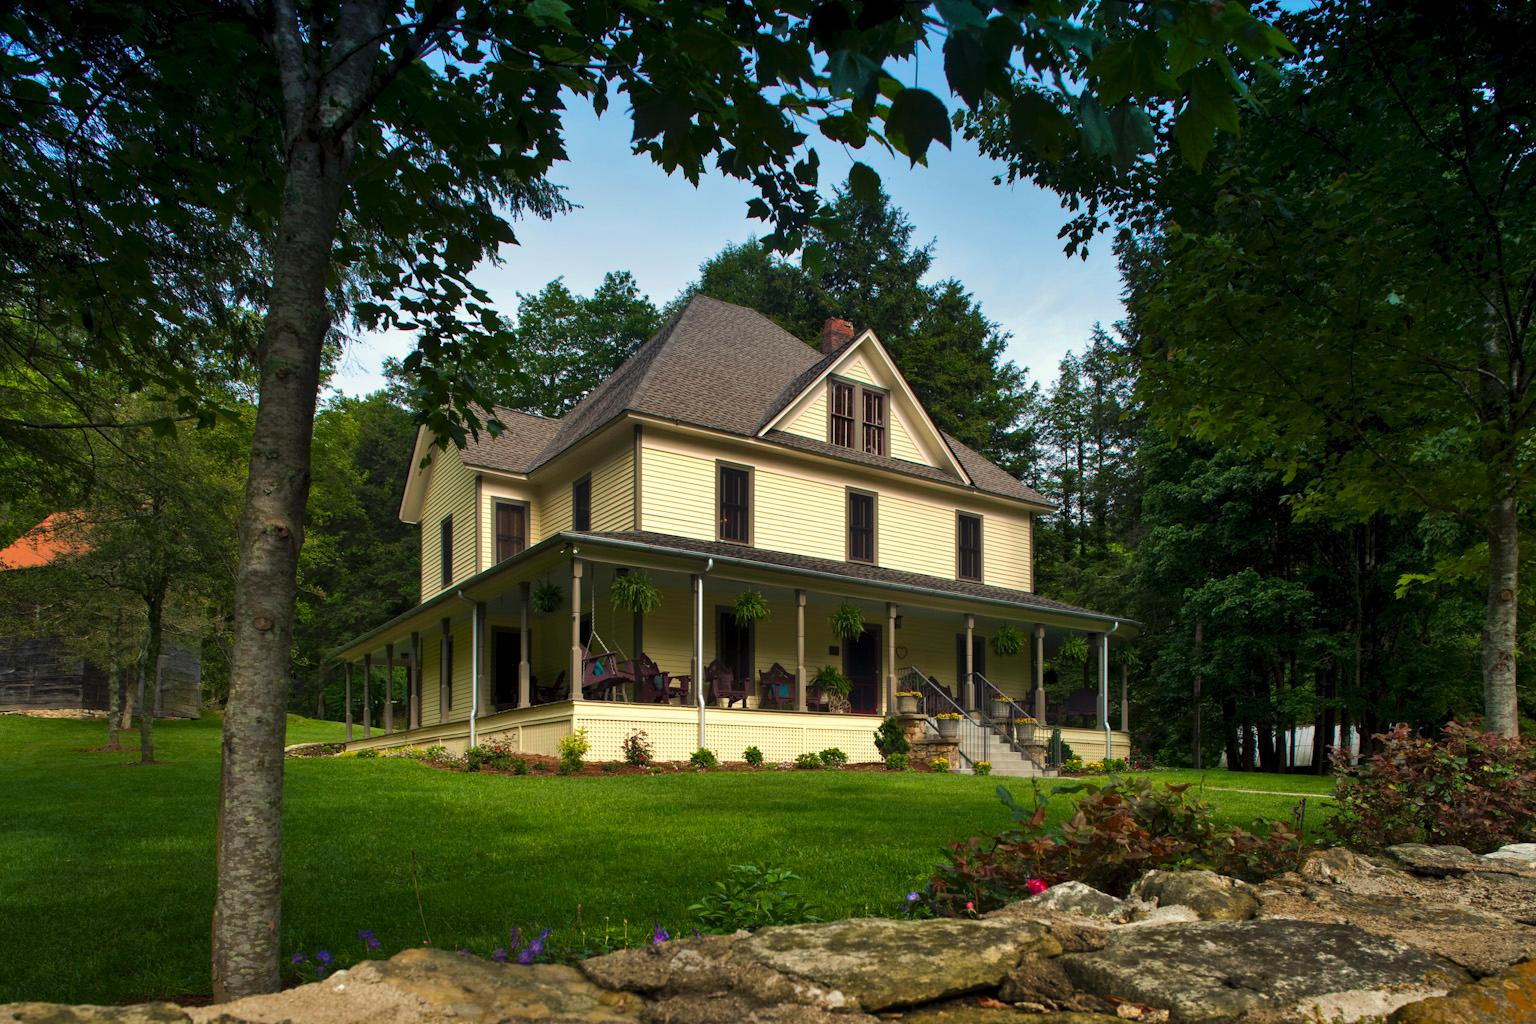 The Buck House Inn on Bald Mountain Creek